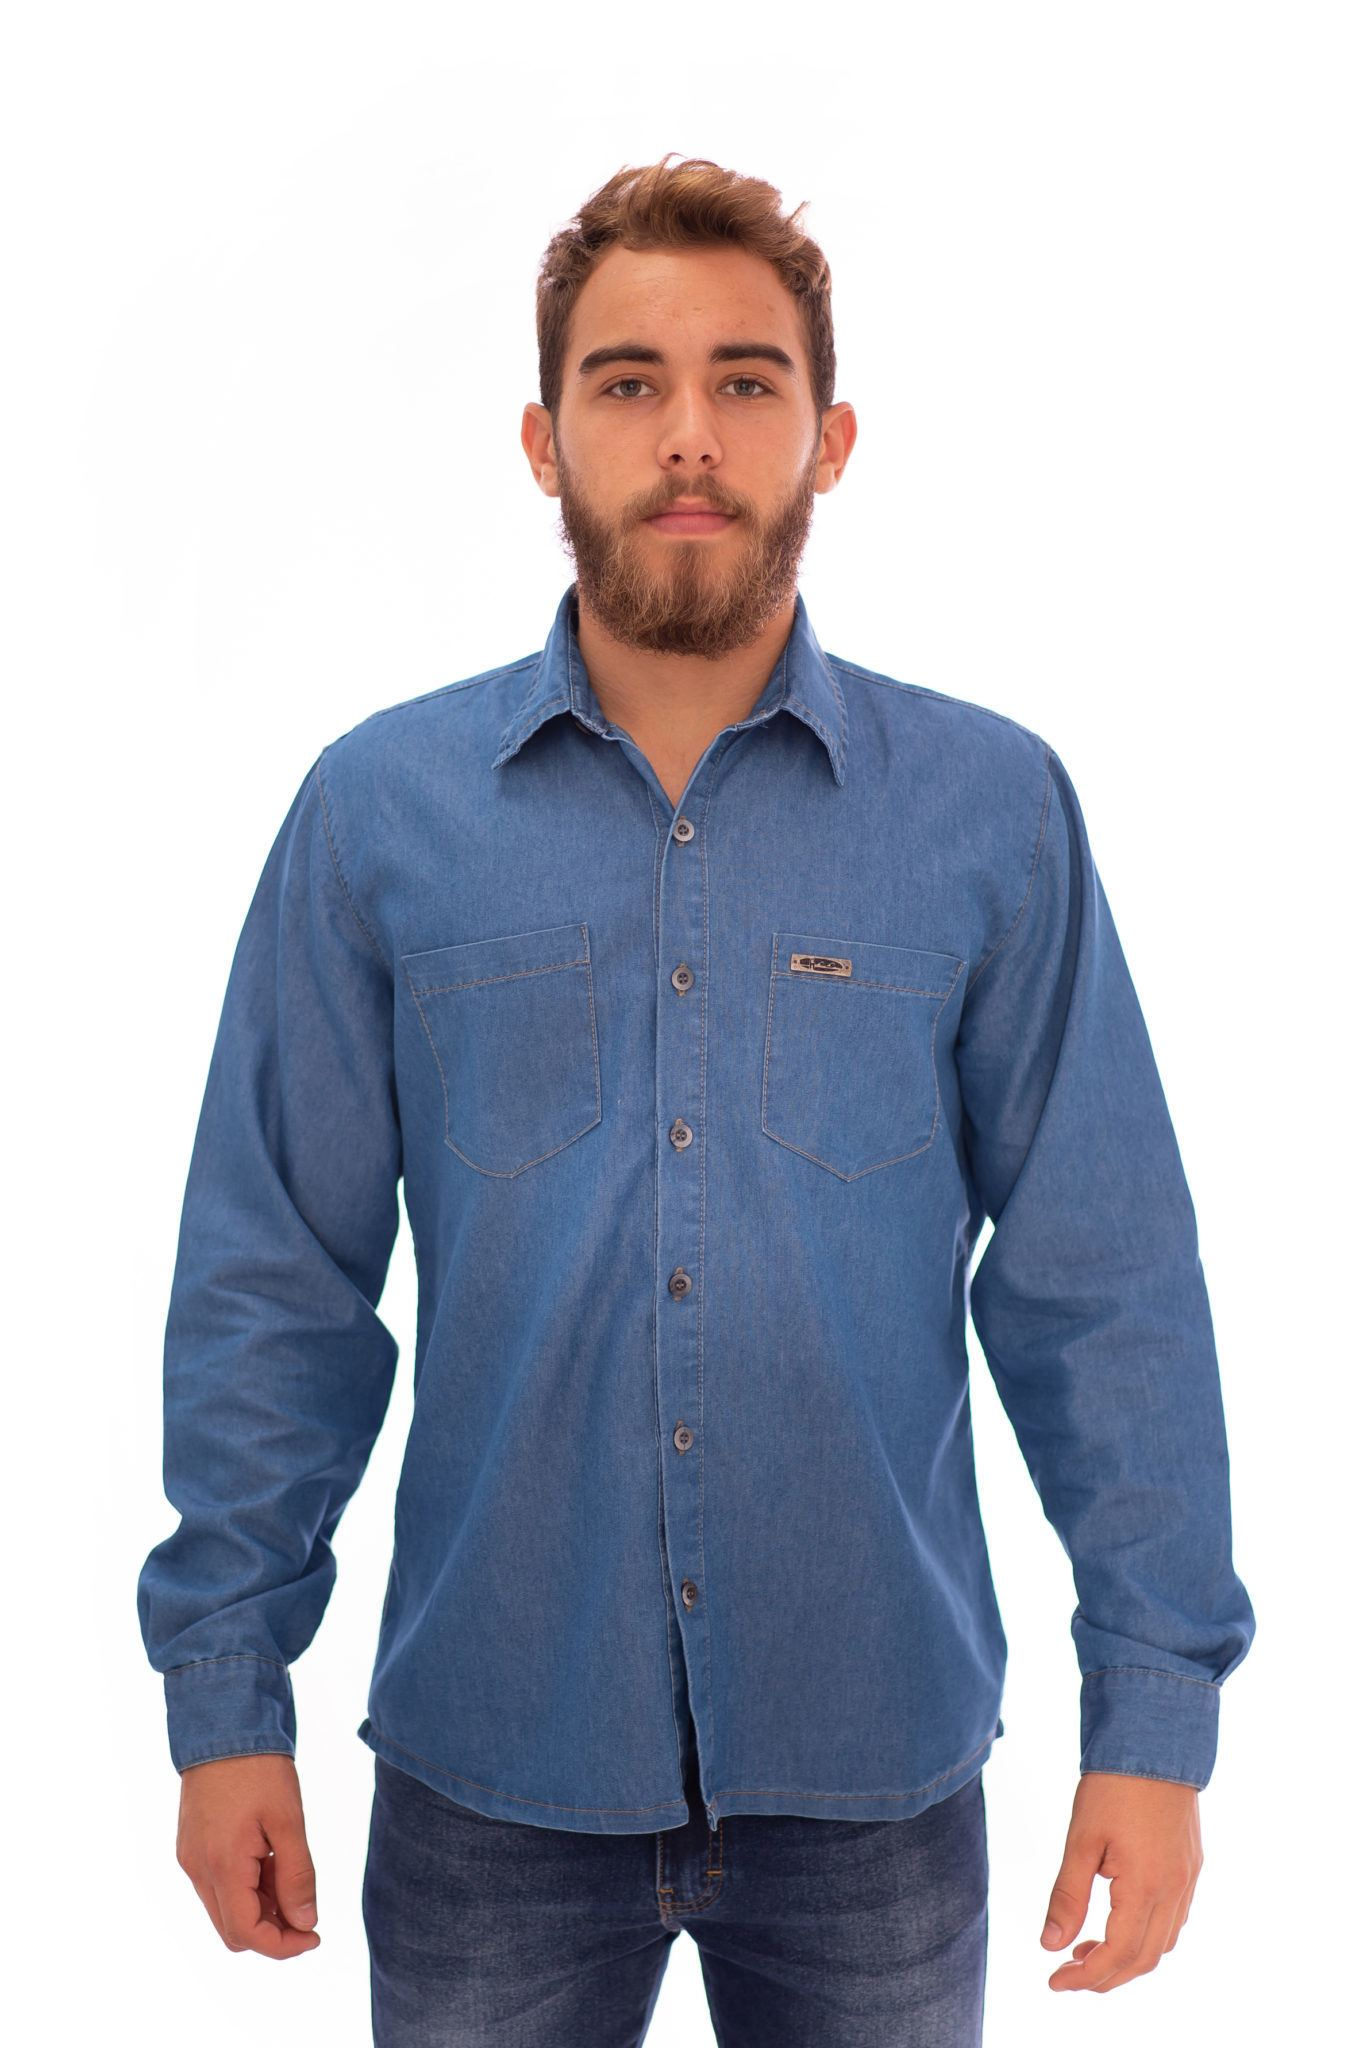 CAMISA JEANS AEE MASCULINA REF.405